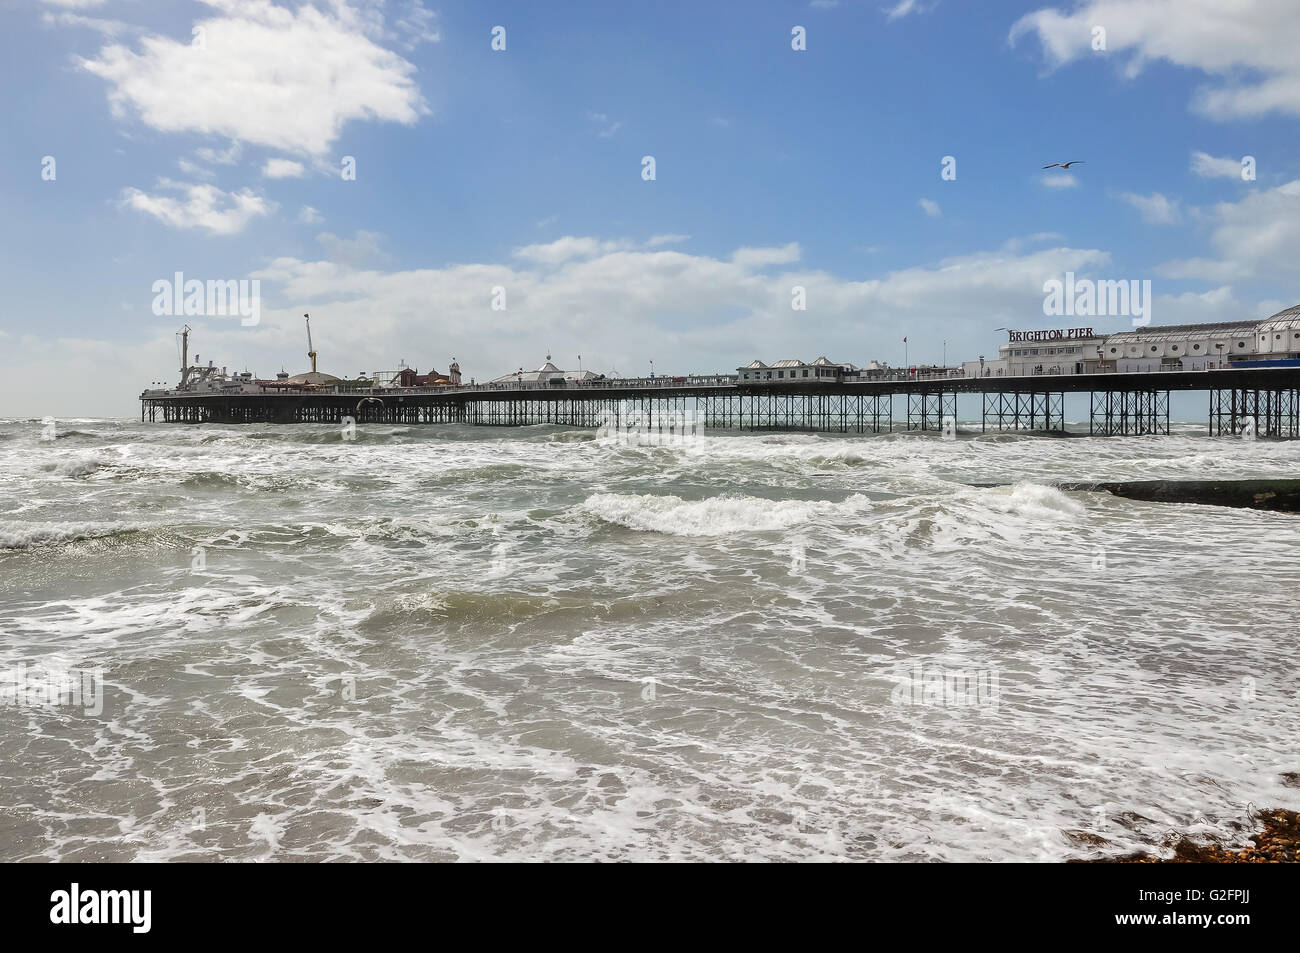 View of rough sea and Brighton pier on a windy day, United Kingdom - Stock Image